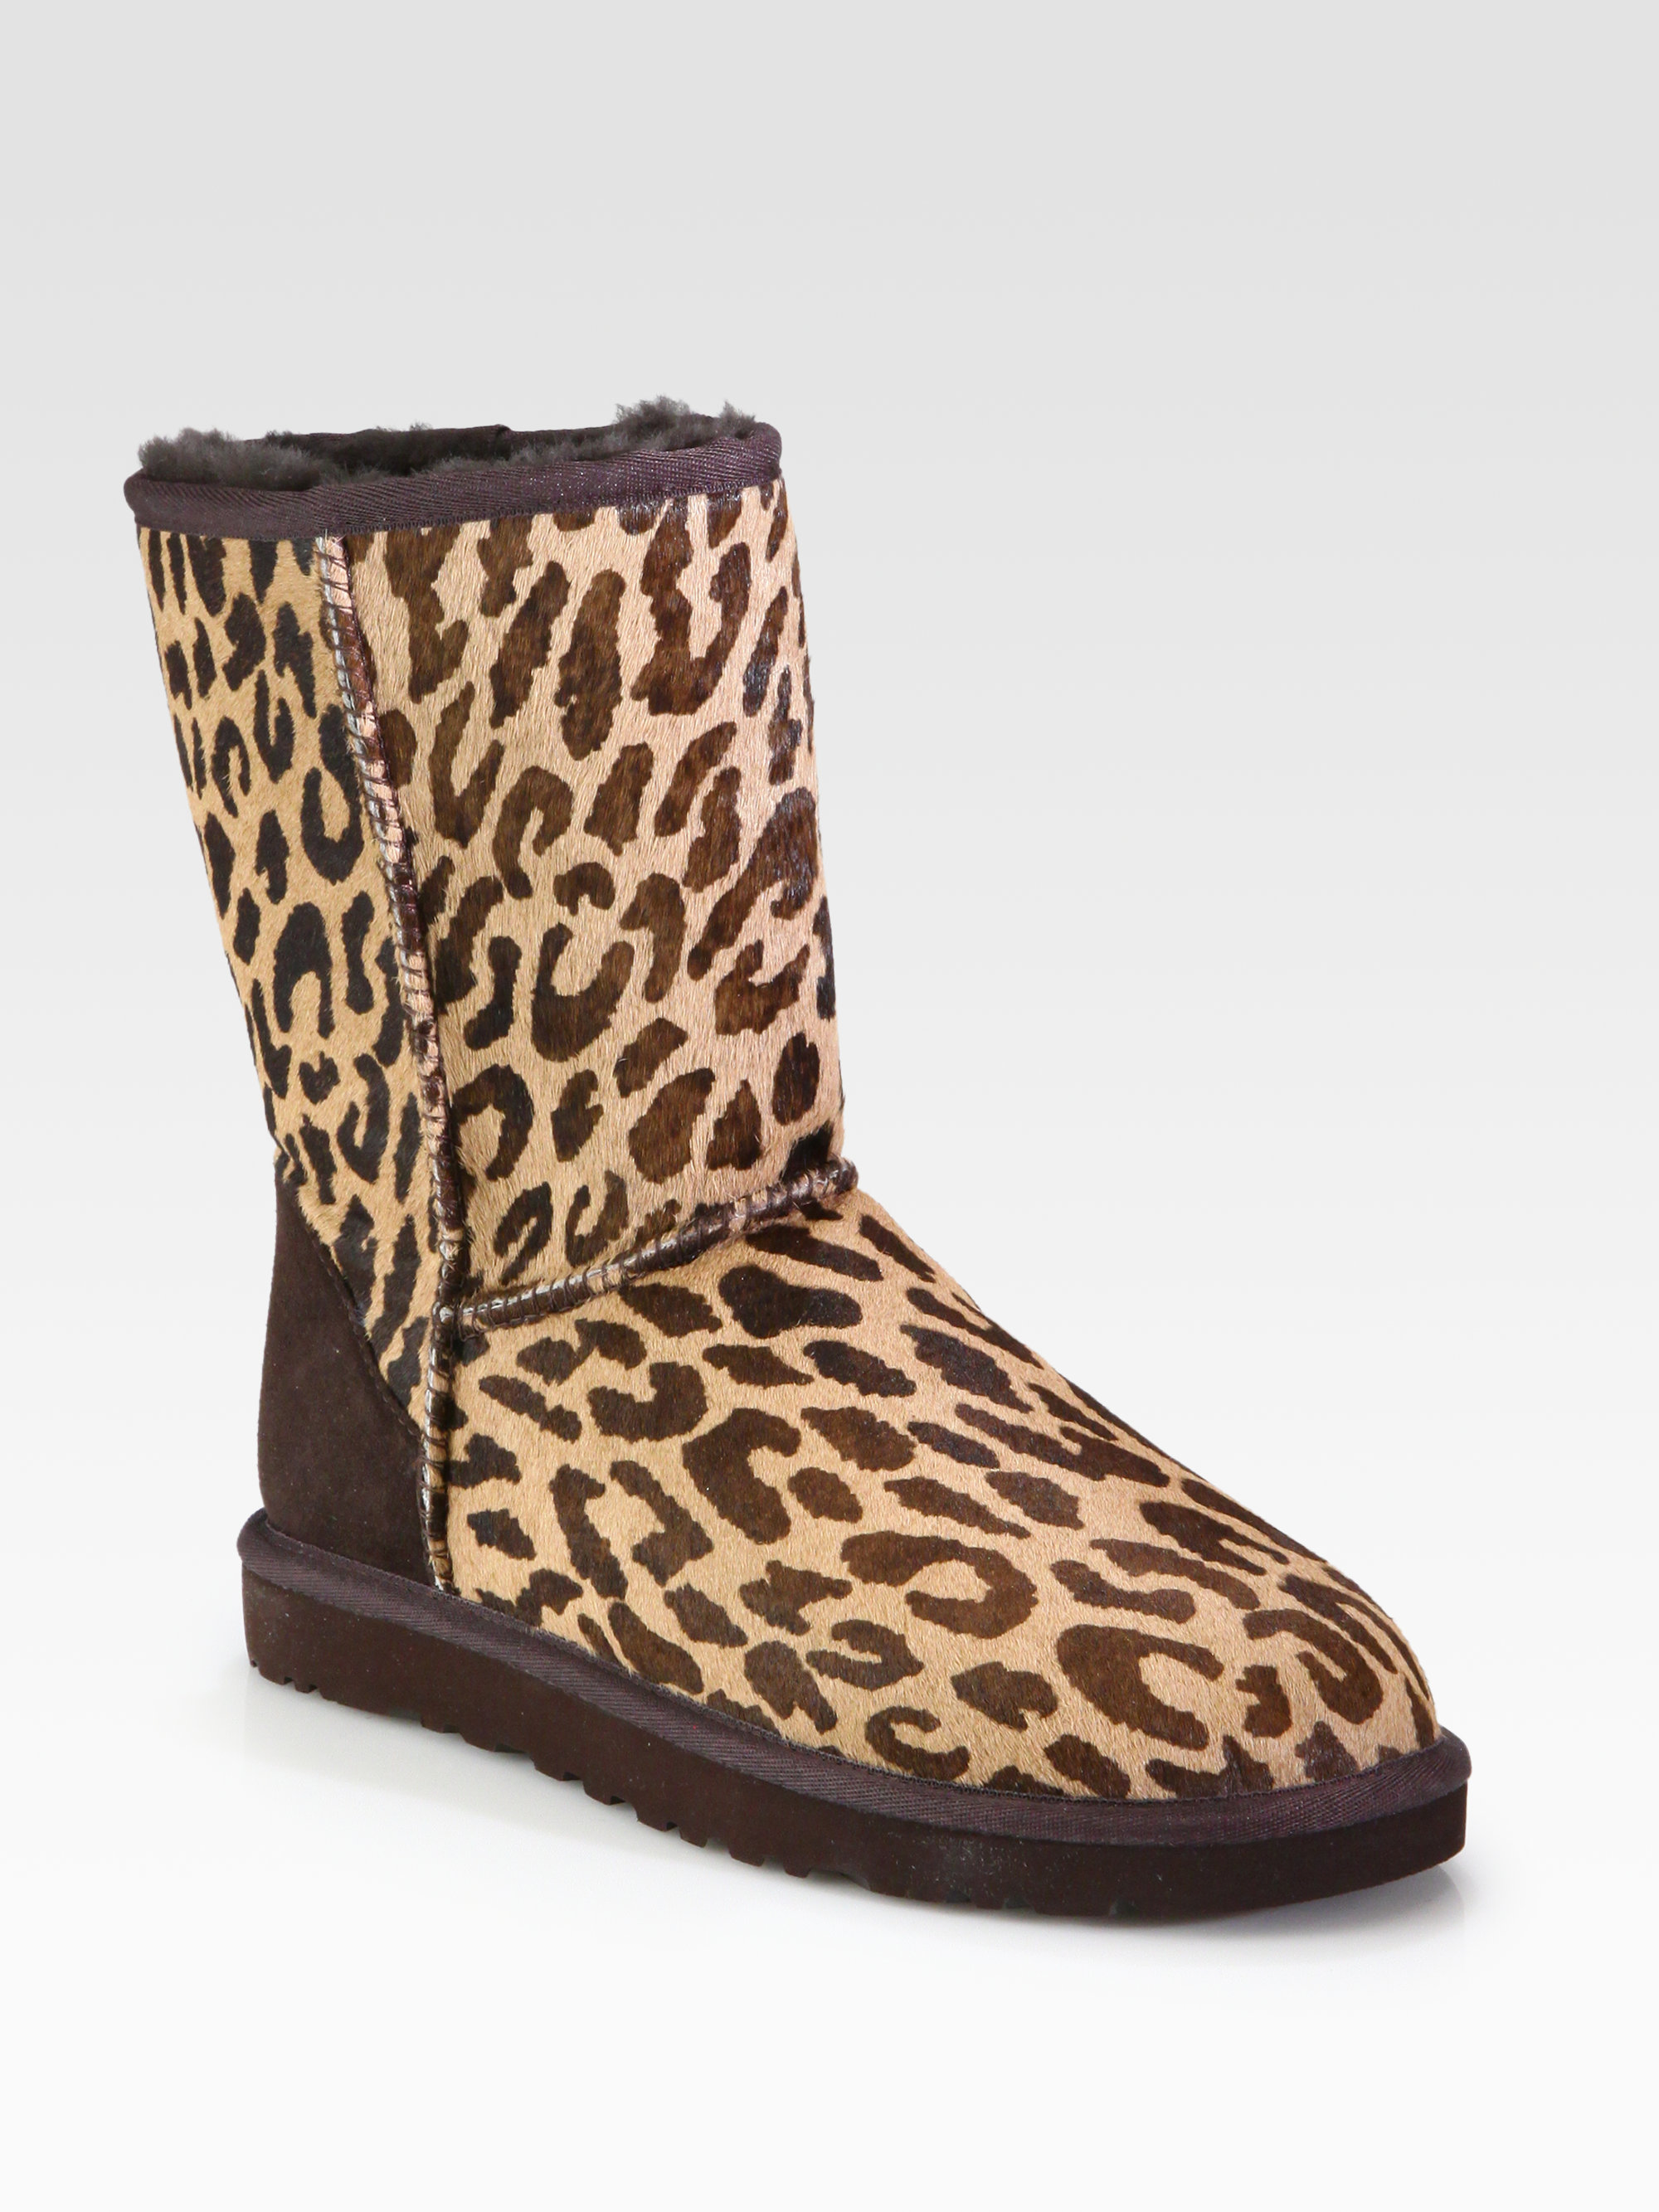 Ugg Classic Short Leopardprint Calf Hair Boots In Brown Lyst